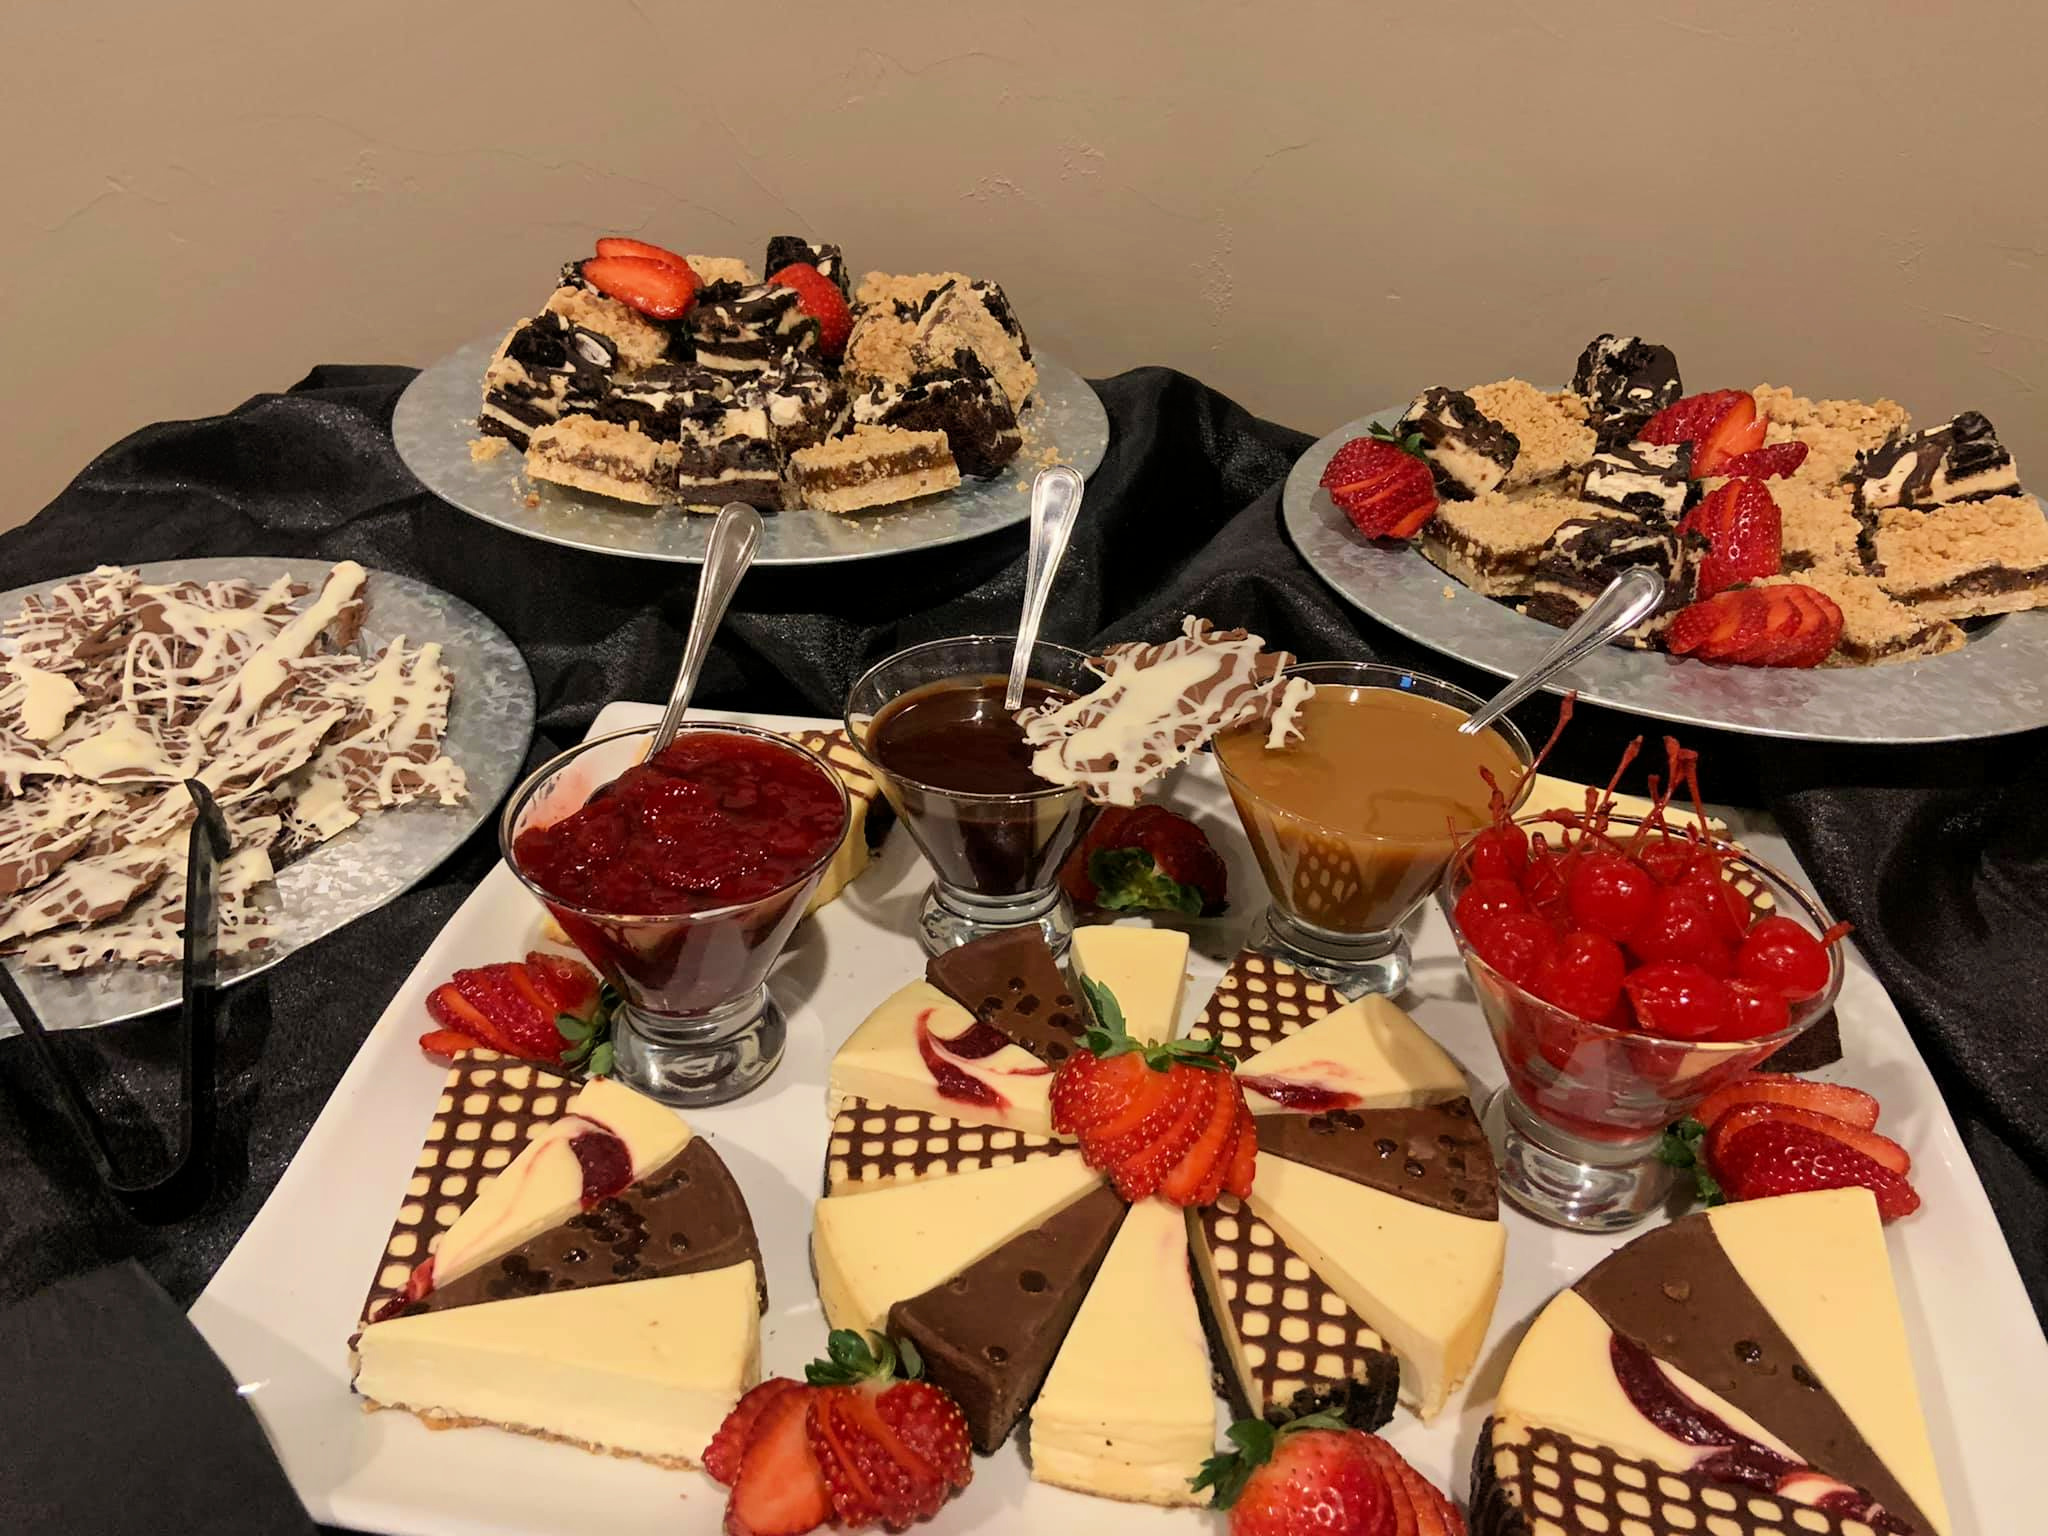 Party Desserts!